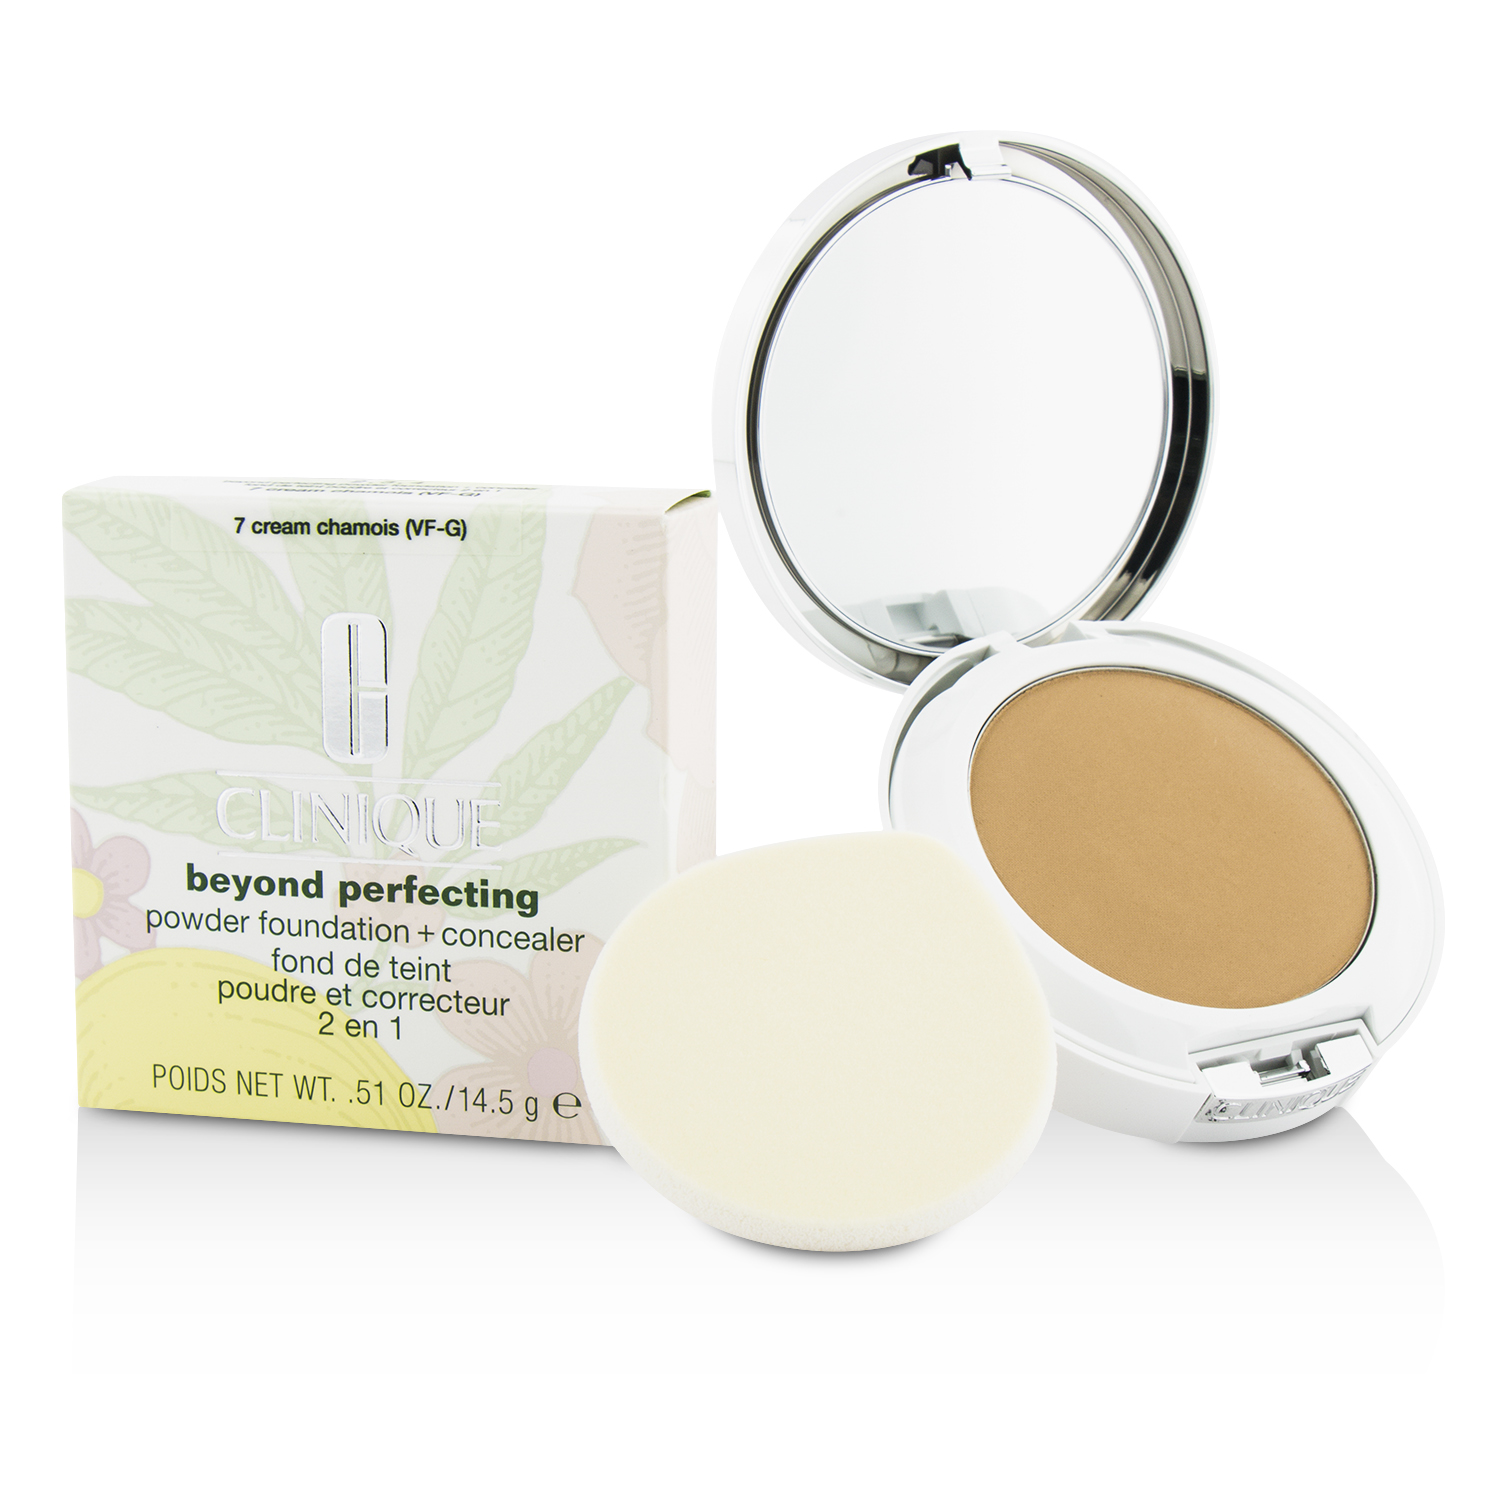 Beyond Perfecting Powder Foundation + Concealer - 07 Cream Chamois (very fair, cool-neutral undertones)